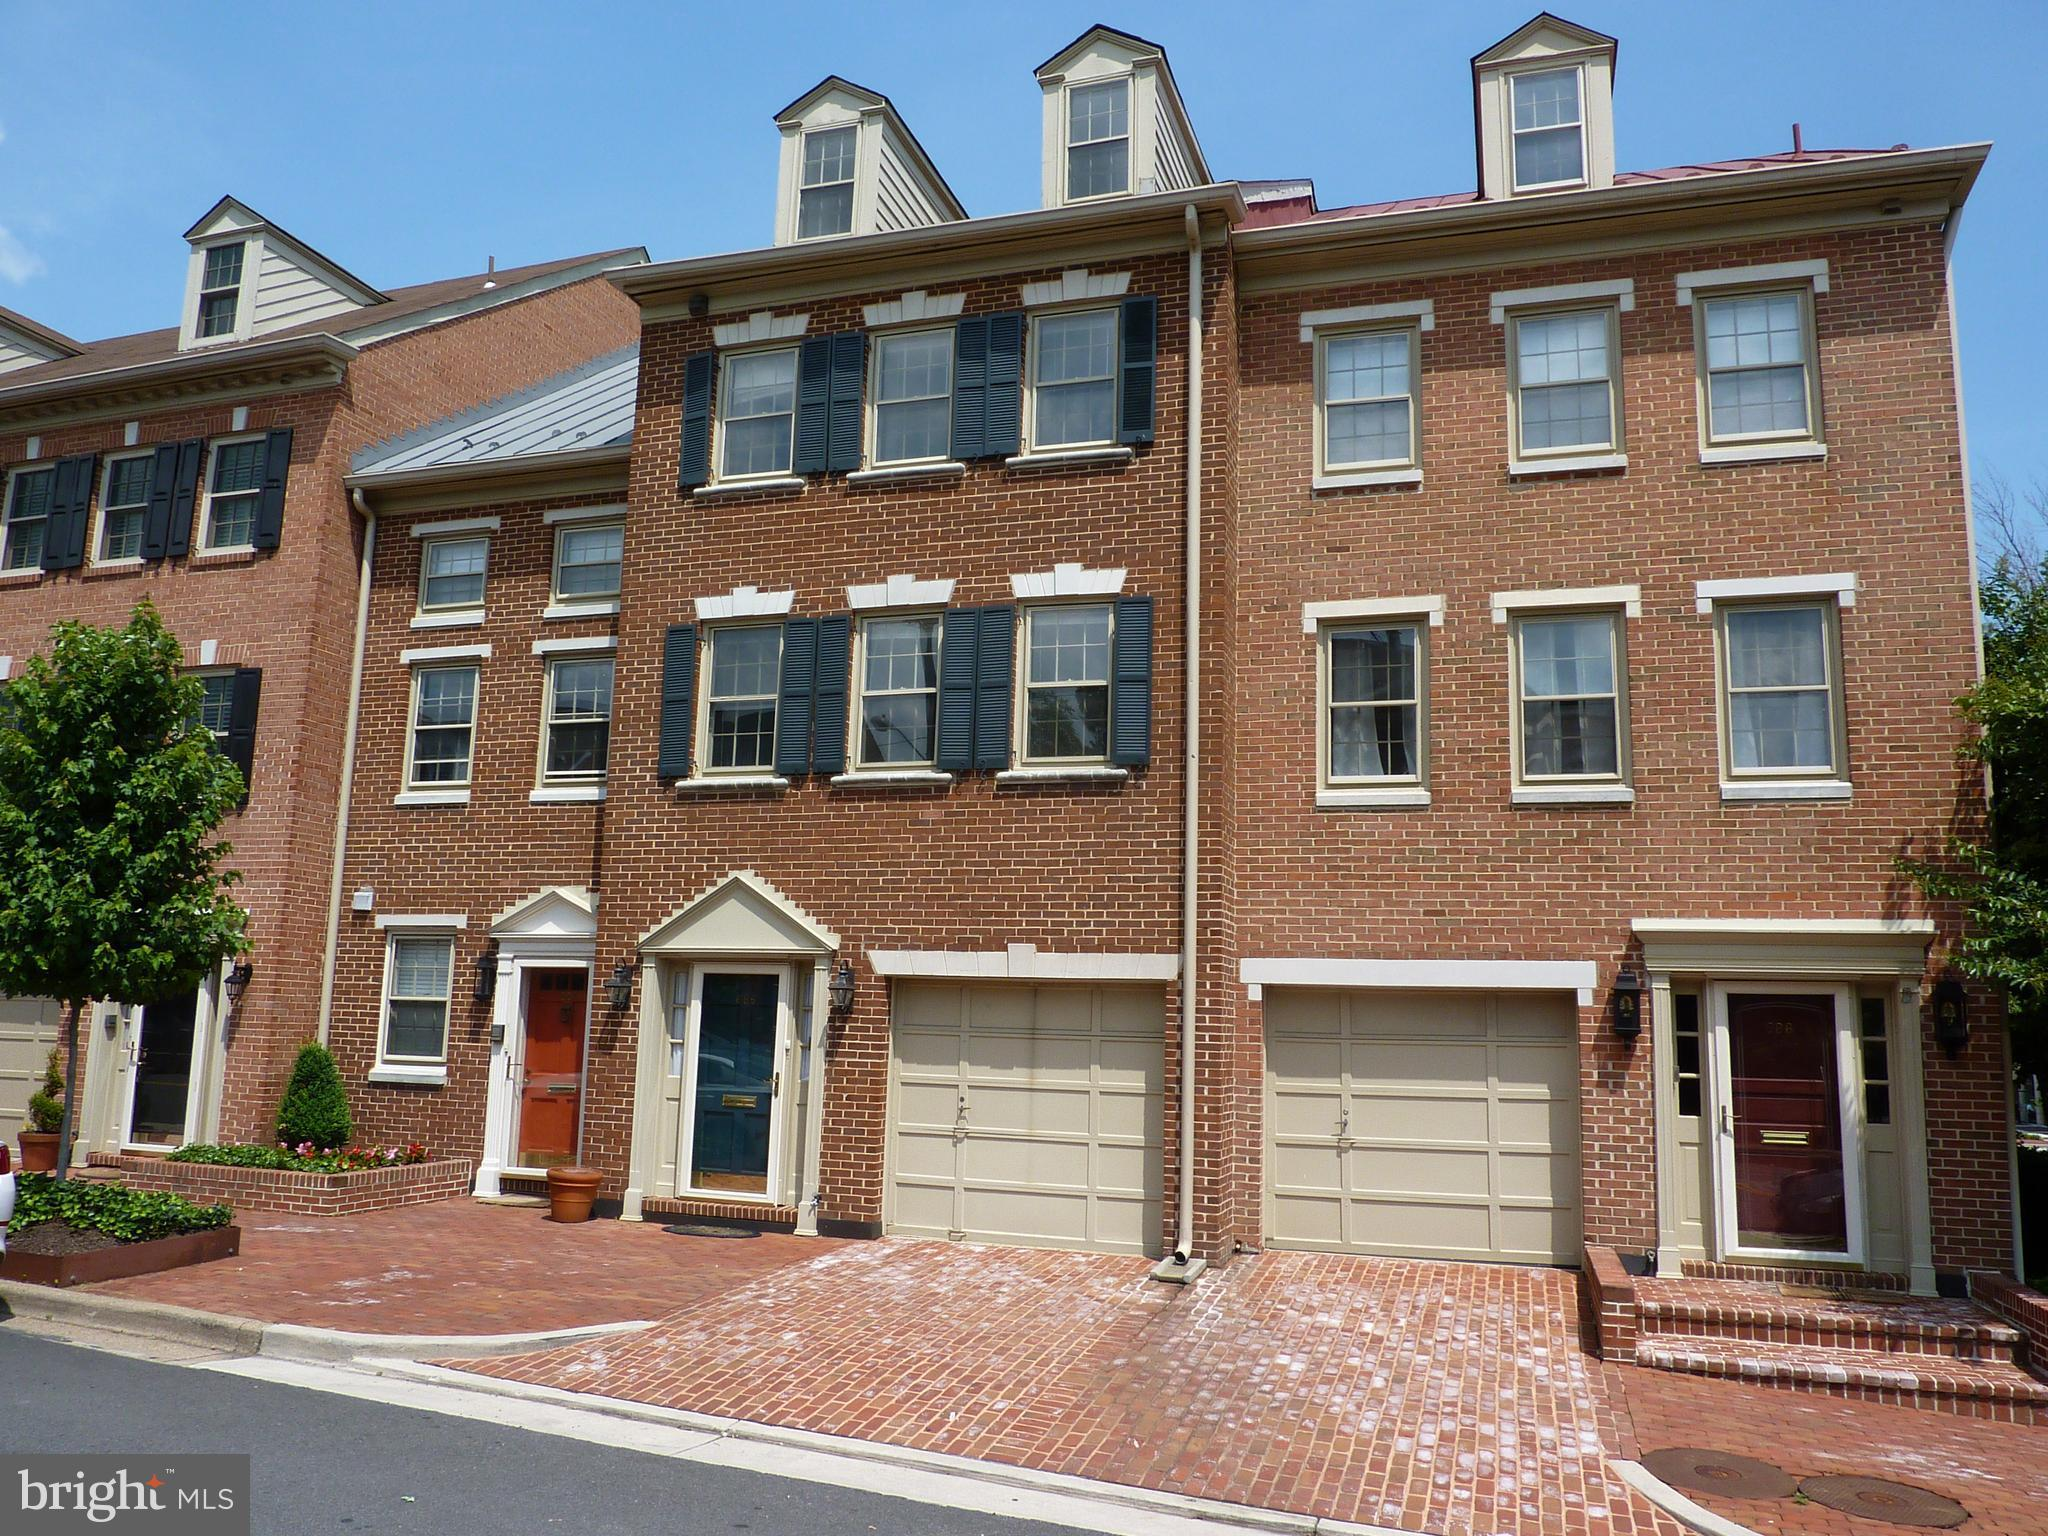 Still Accepting Offers - Current contract contingent upon buyer home sale. HUGE PRICE REDUCTION! OPEN SATURDAY AND SUNDAY 2 to 4 PM. Beautiful Townhome in the most desirable part of Old Town! Hardwood floors throughout,  Crown Molding, granite counters, and 2 GARAGE parking spaces (1 under) just 1 block from great dining and shopping. 2 fireplaces, wet bar and walk-out to patio. 2 en-suite bedrooms, 3 full and 1 half baths total. Over 2000 sq ft of finished living space. Don't miss this opportunity in best part of Old Town!